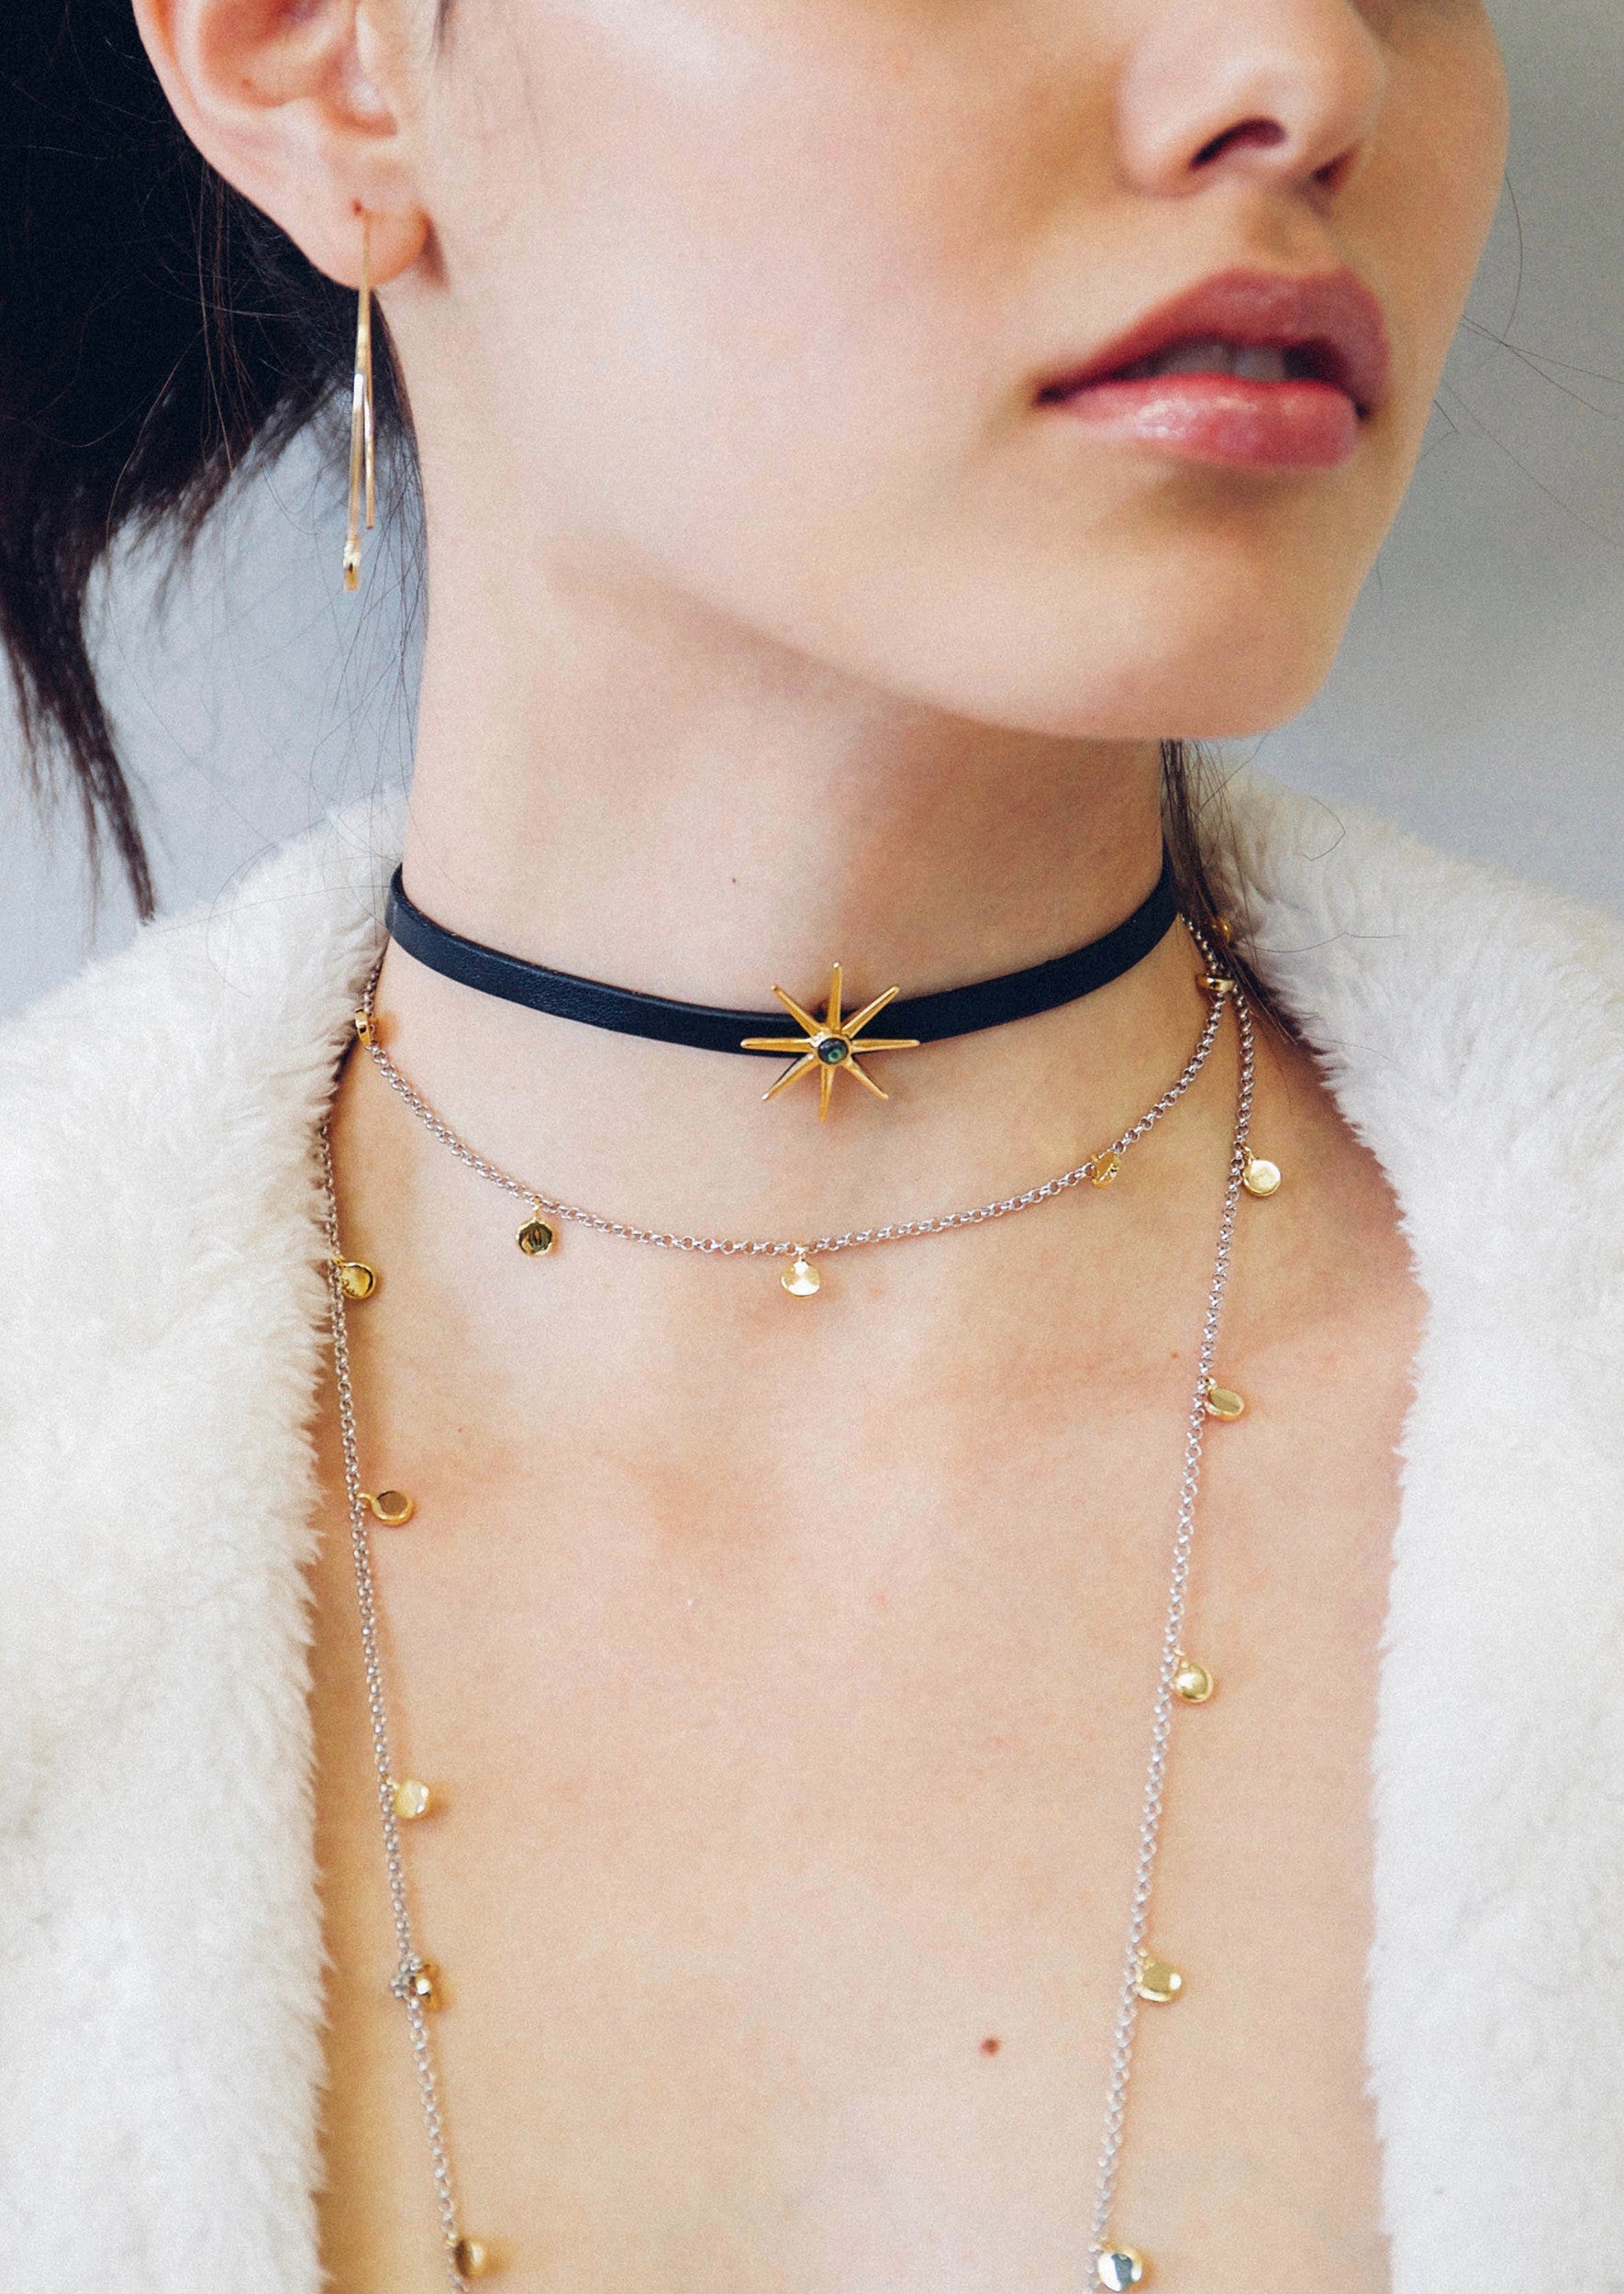 Jules Smith Leather Choker With Star Charm